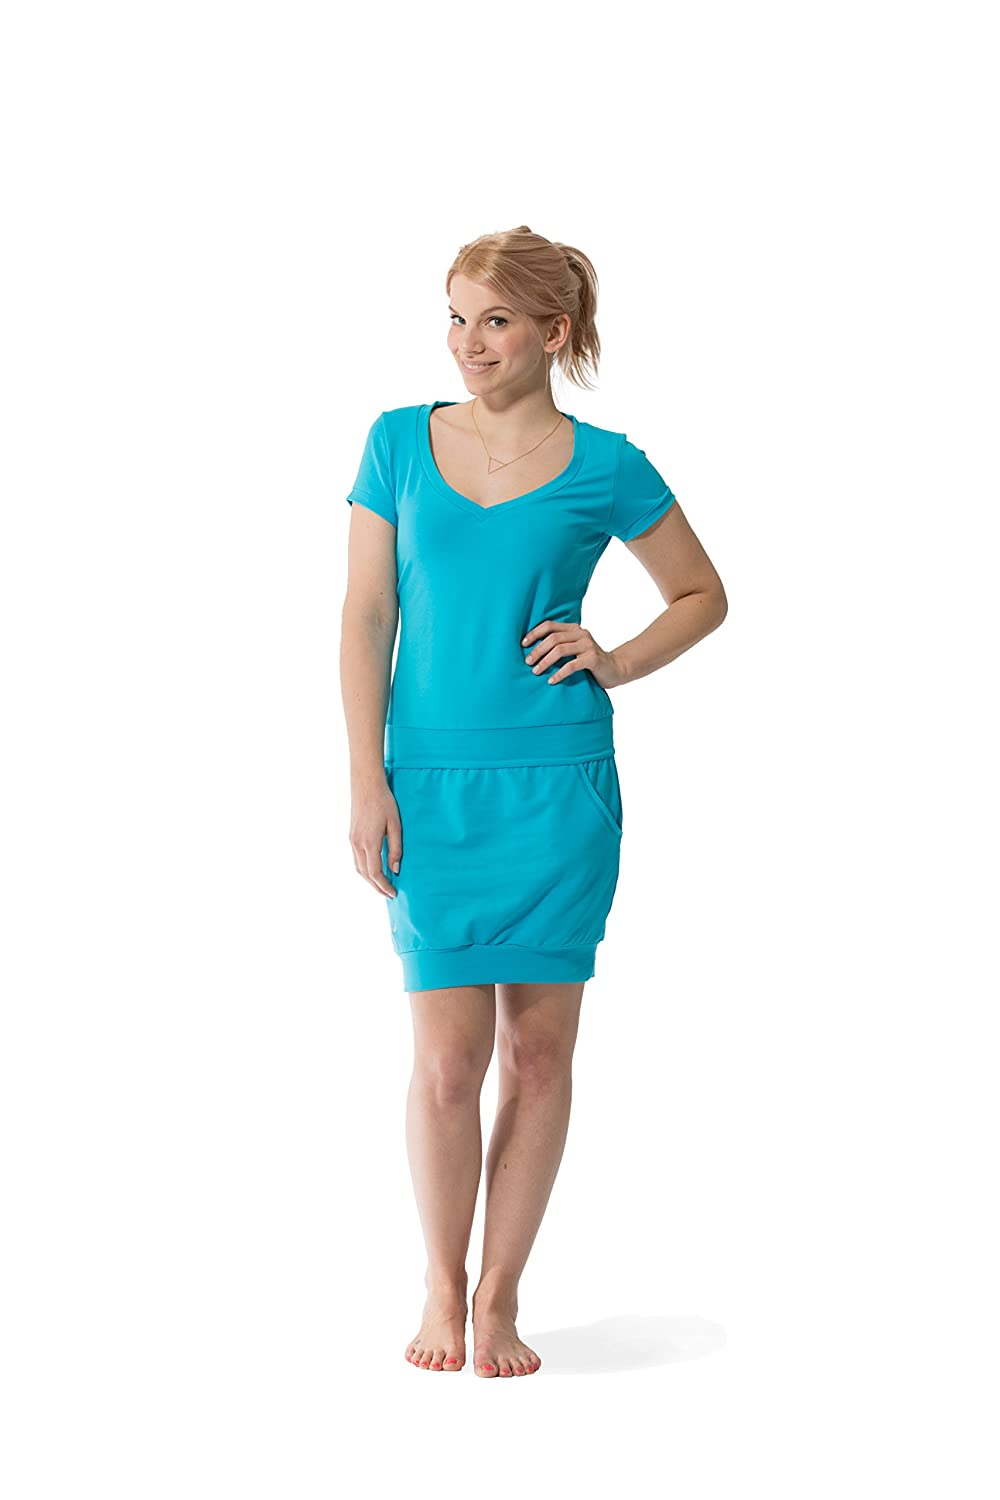 Jumpster Sommerkleid Damen Sweatdress LADY